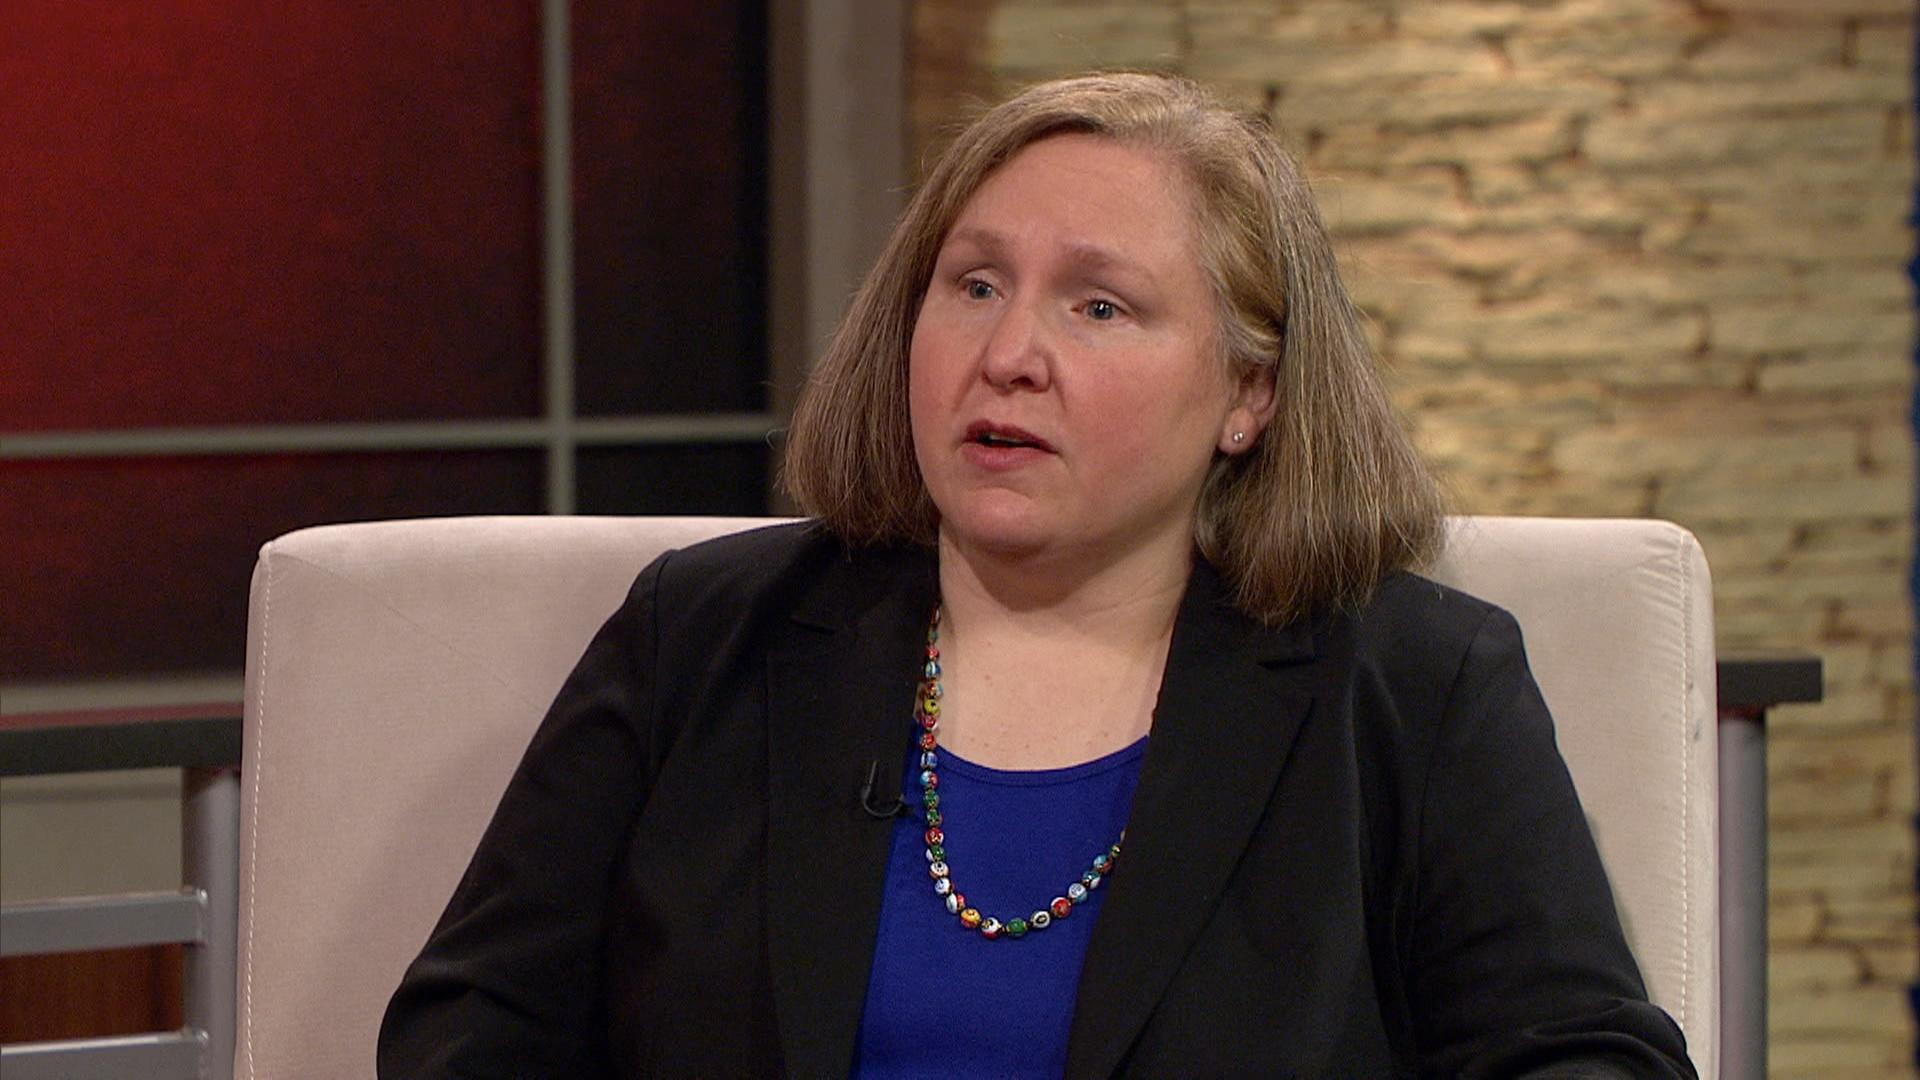 Connections   Julie Cerel - Youth Suicide Prevention   Season 14   Episode  29   PBS